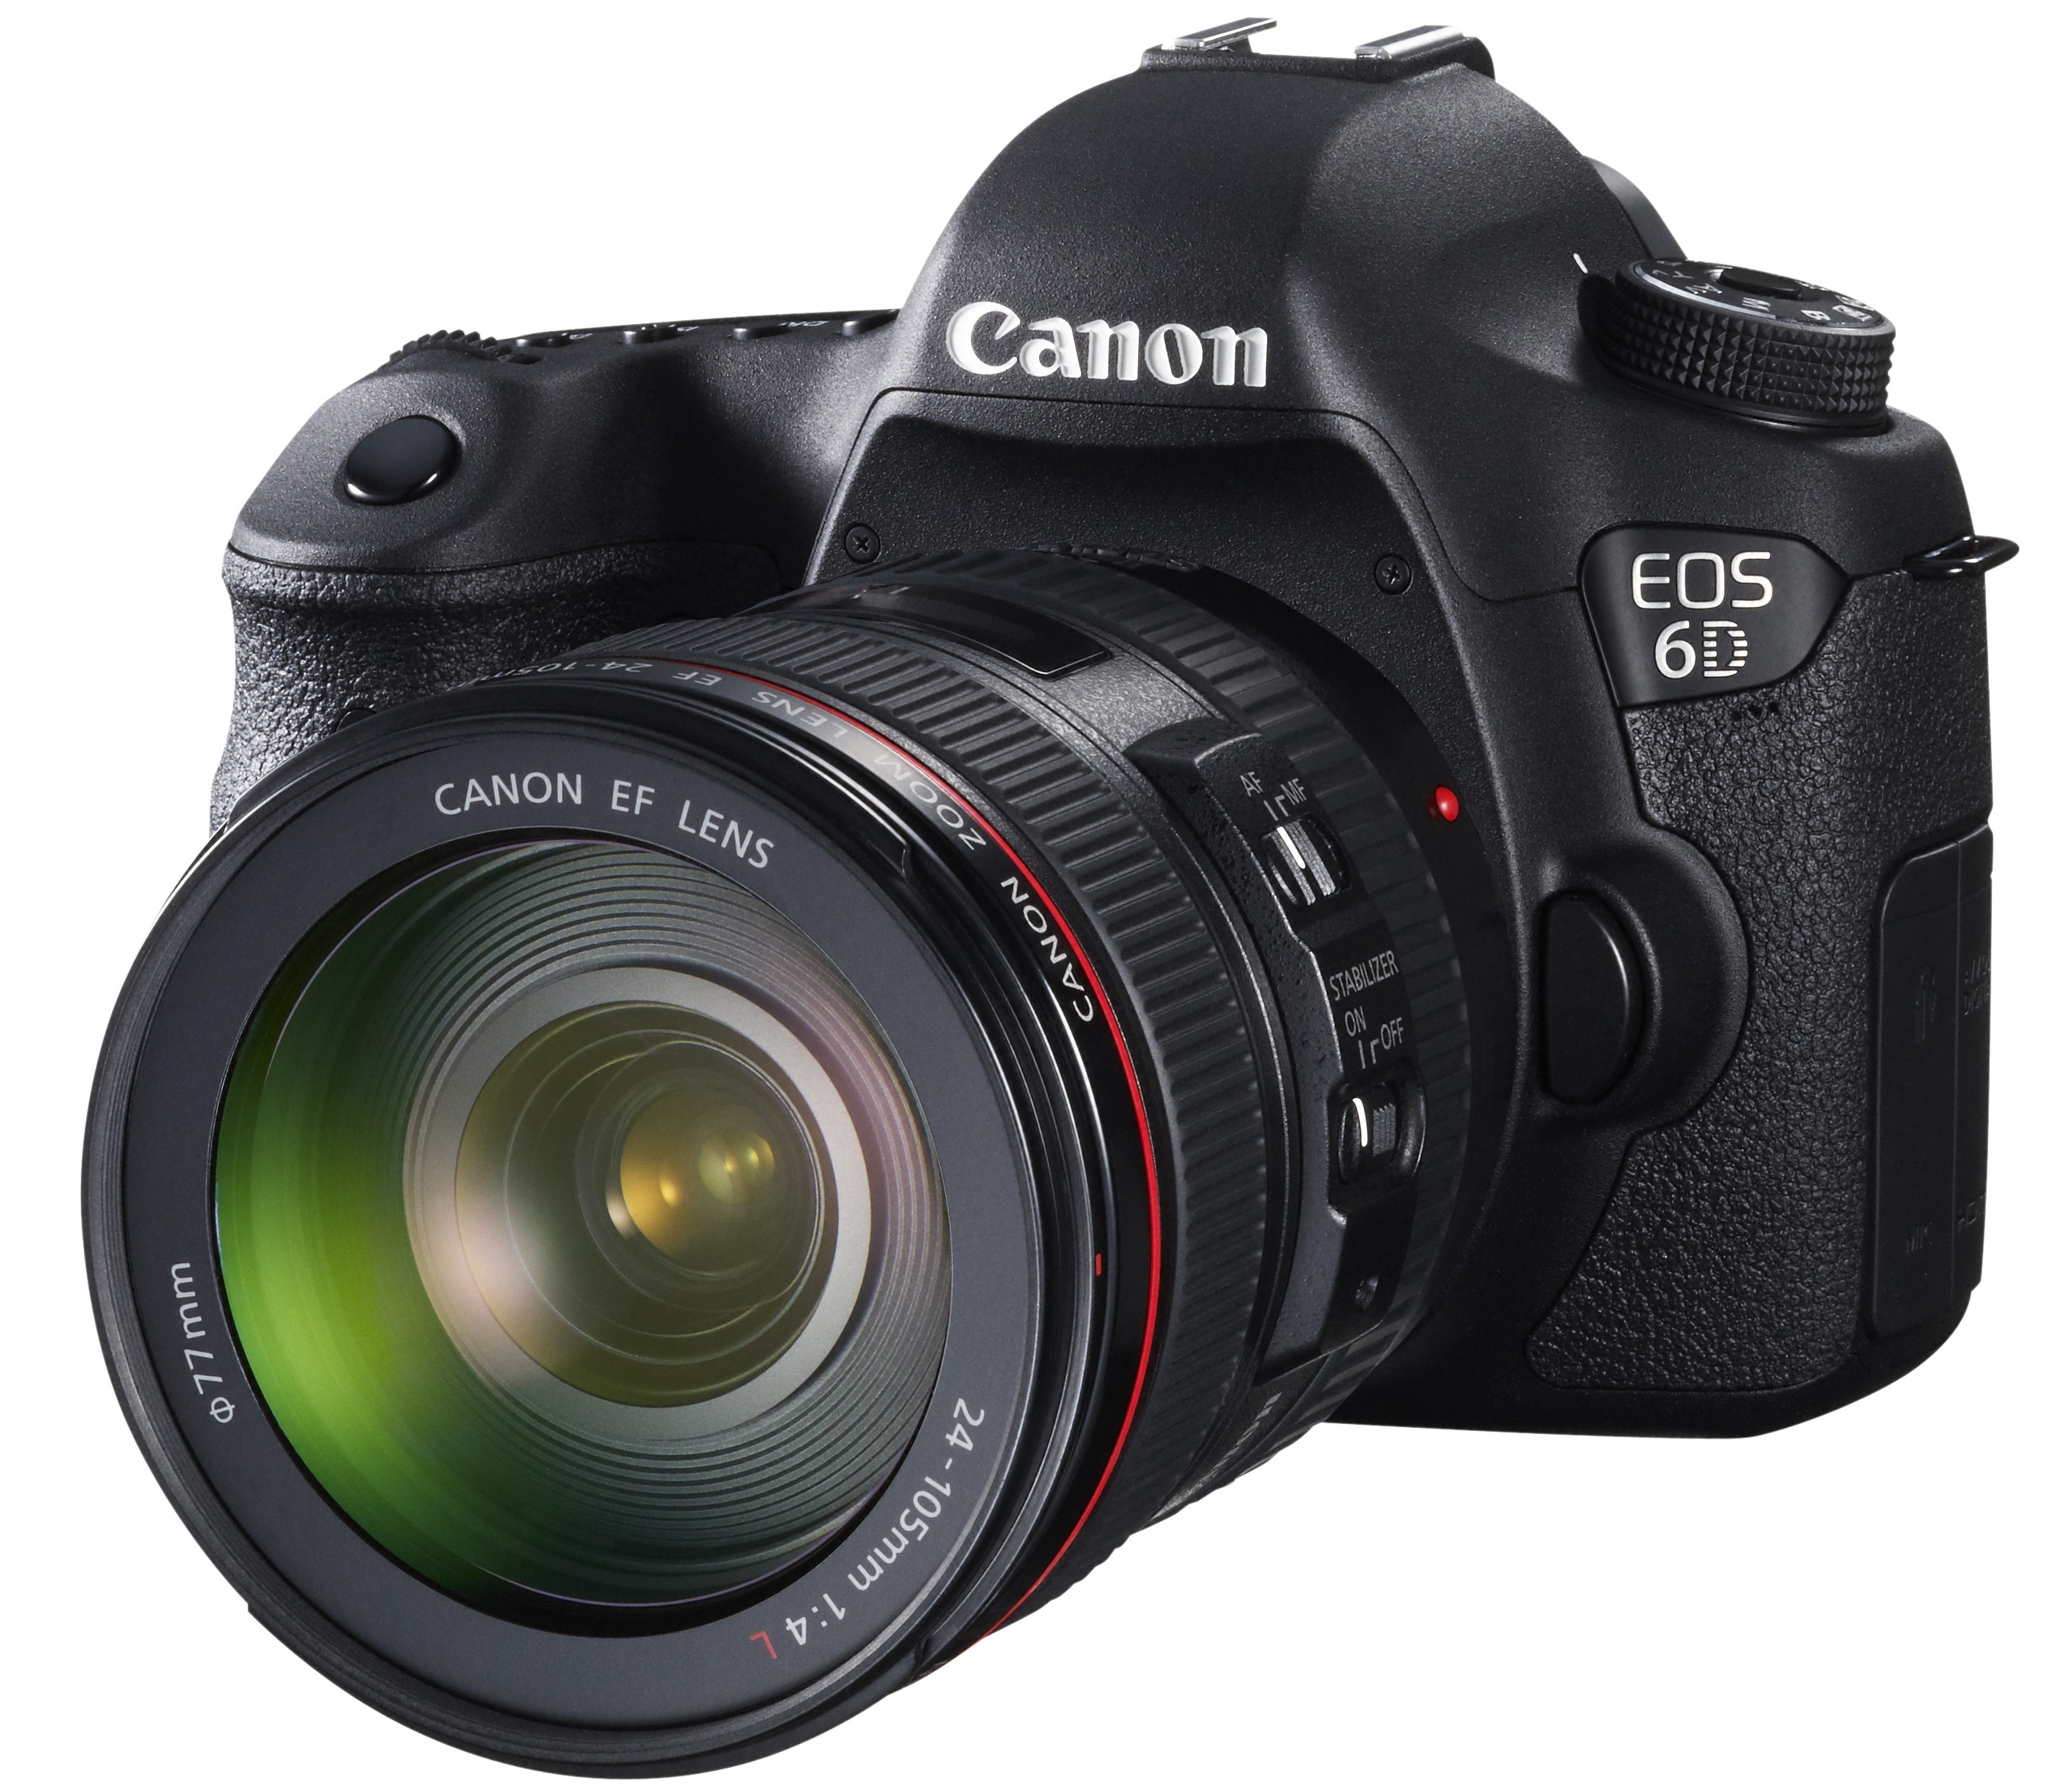 Camera Canon Dslr Camera For Video the new canon eos 6d full frame dslr a miss for video journalists